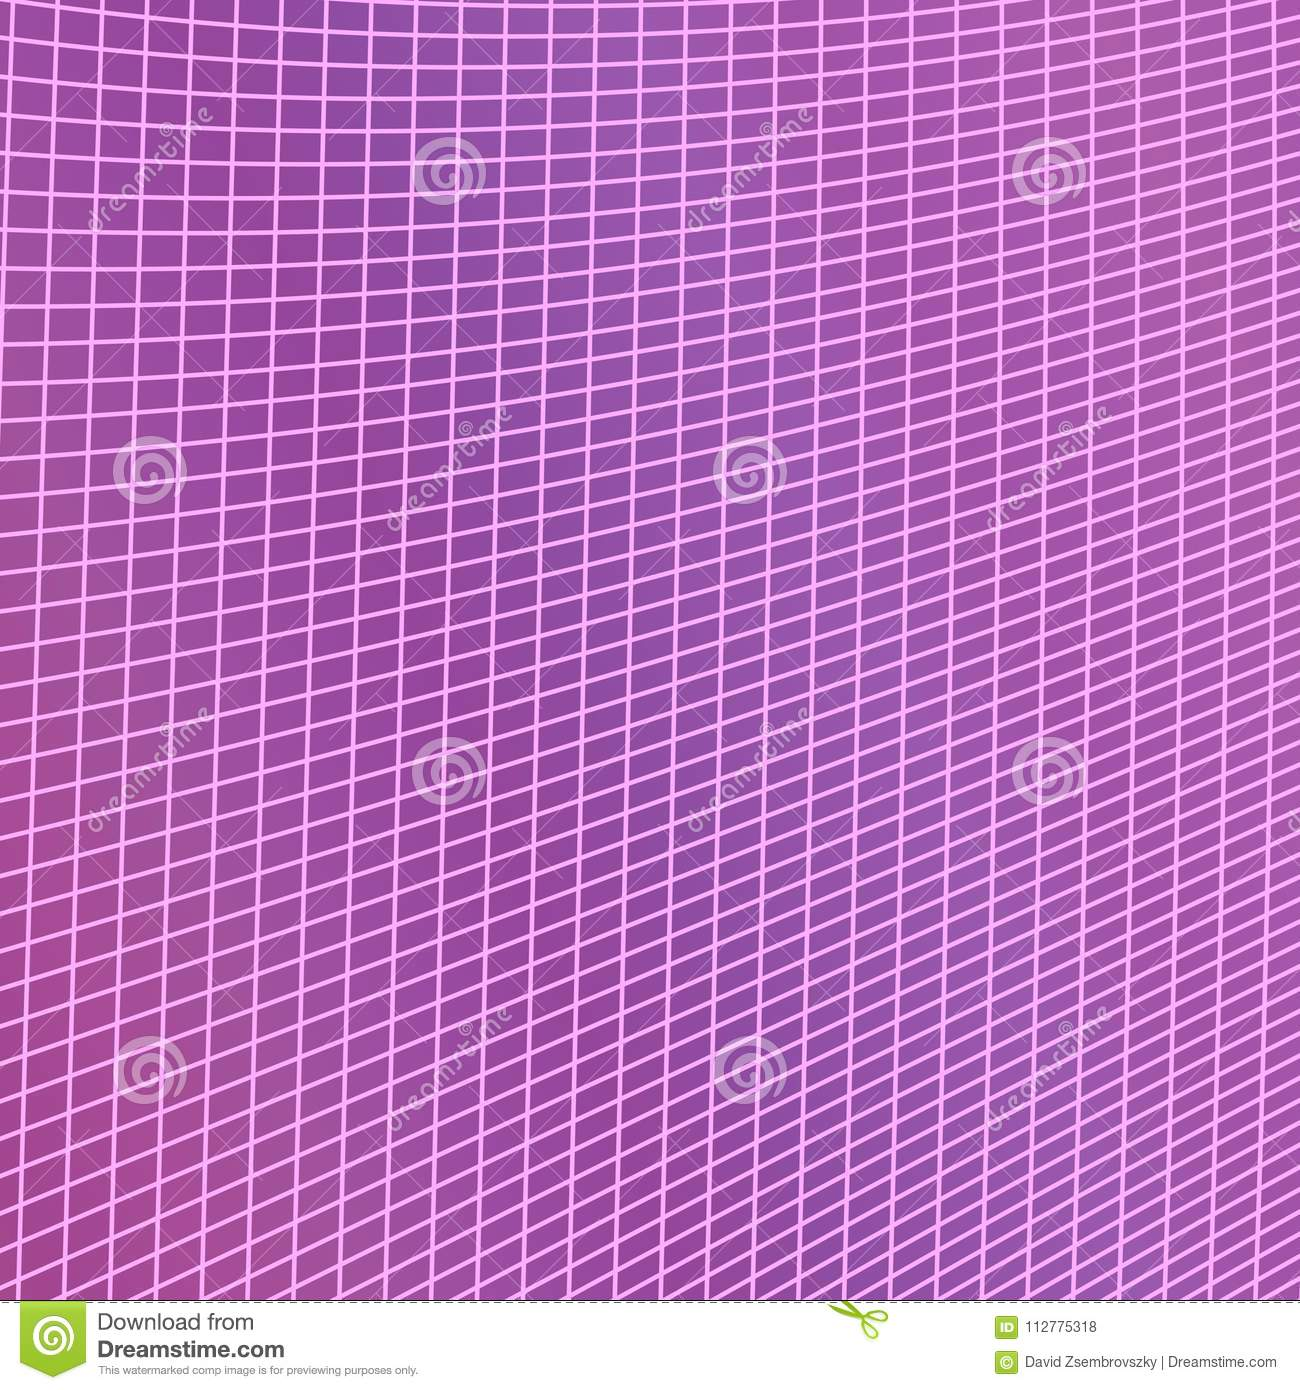 Purple Abstract Modern Grid Background - Vector Graphic Design From